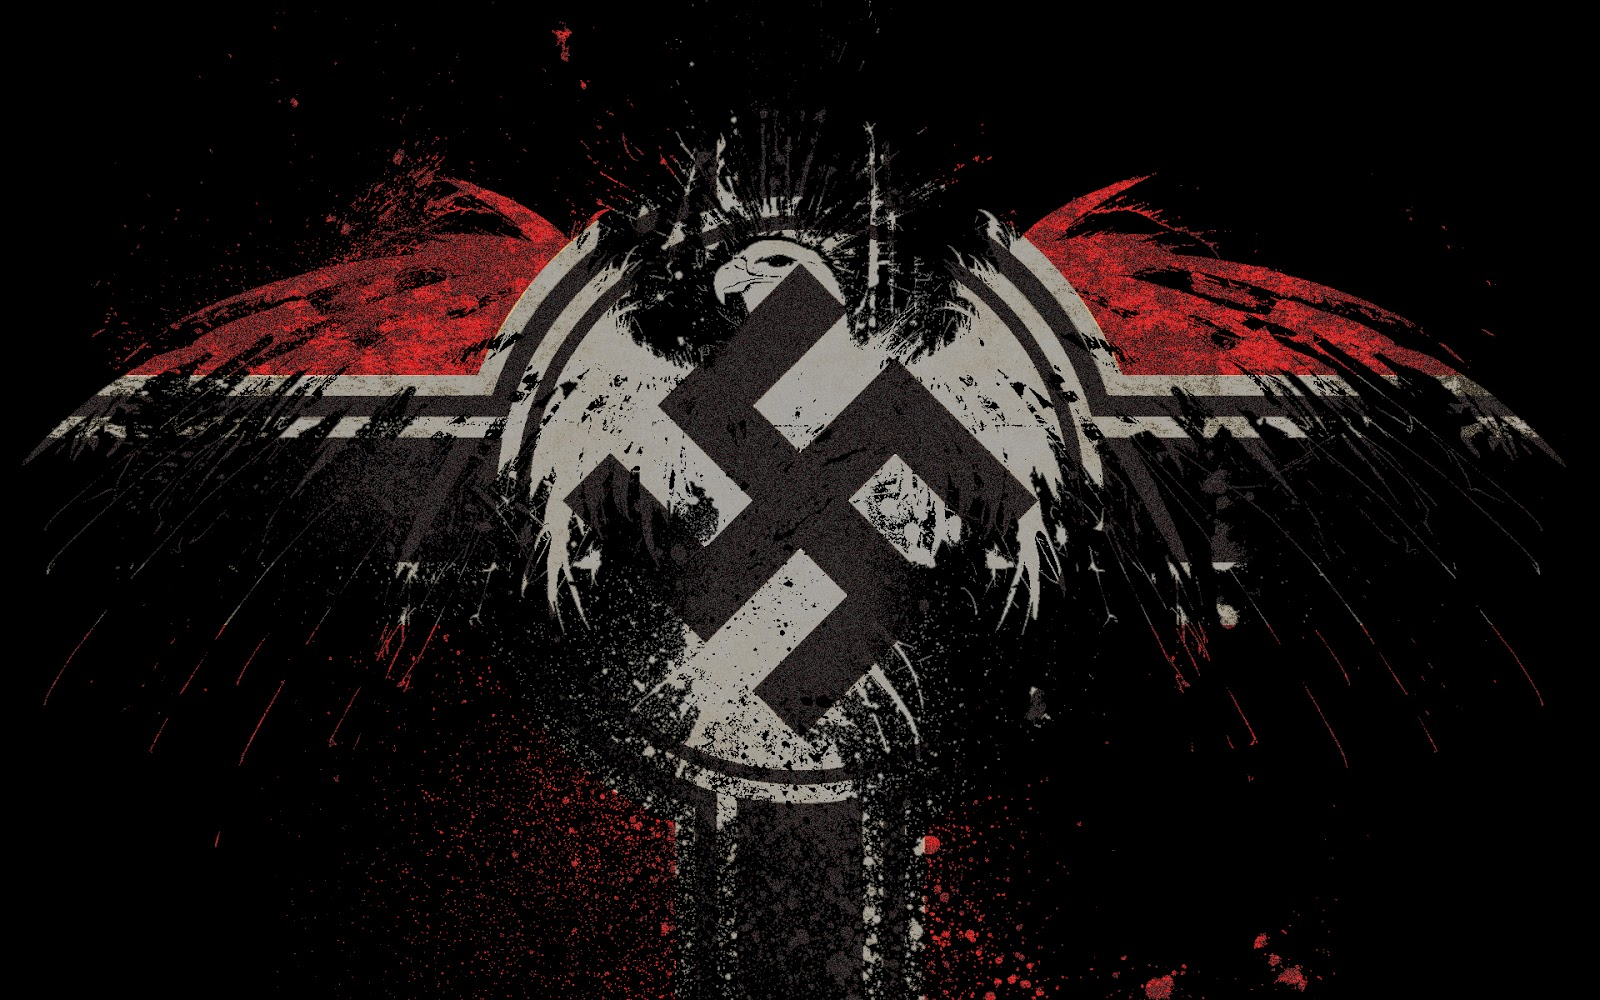 18 nazi hd wallpapers - photo #16